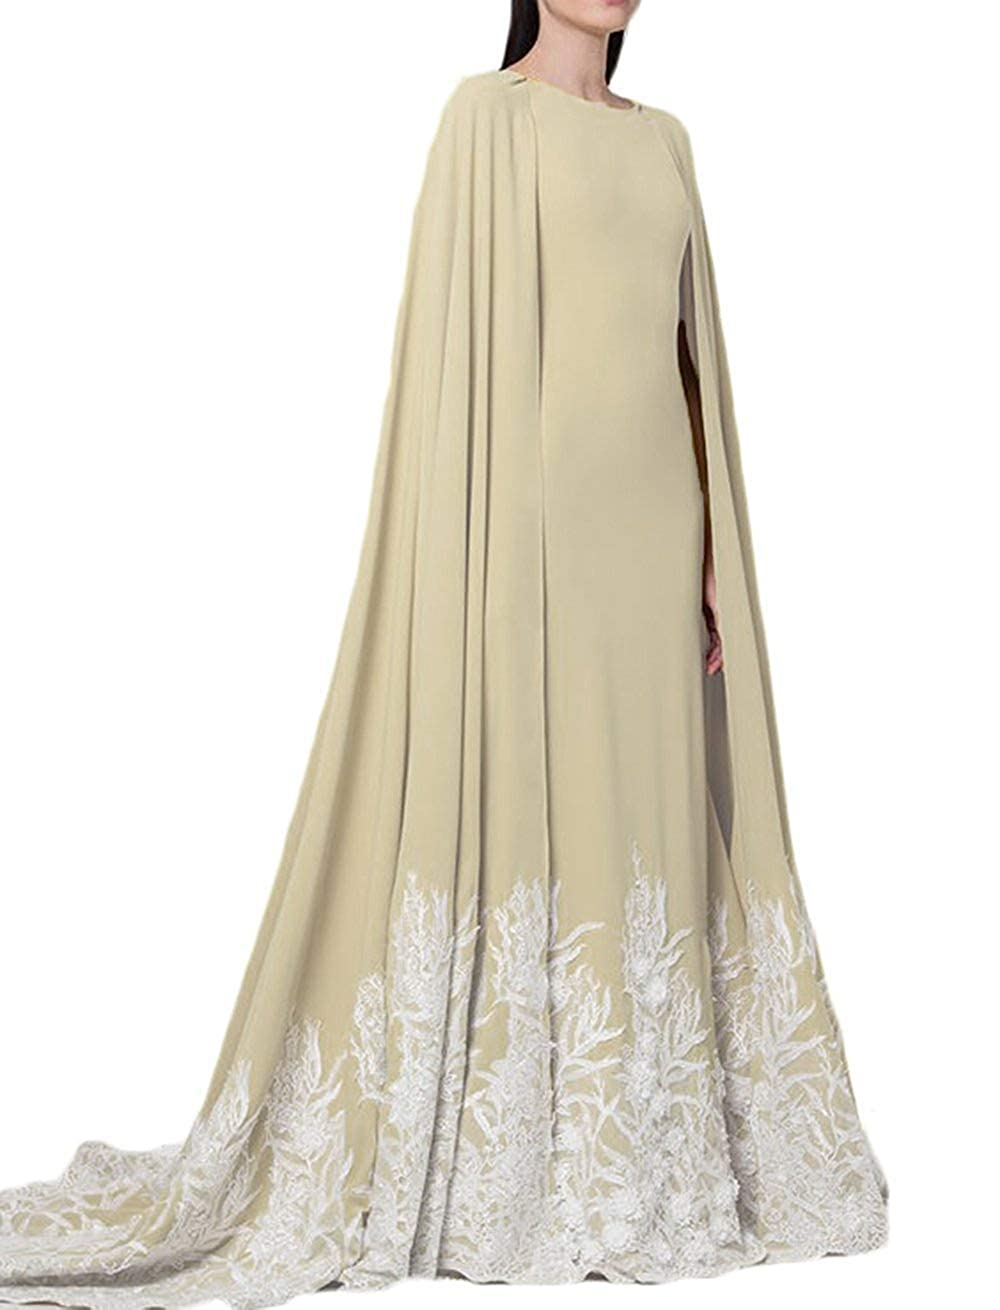 Champagne Dreagel Elegant Mermaid Prom Formal Dresses with Cape Lace Appliques Evening Gowns